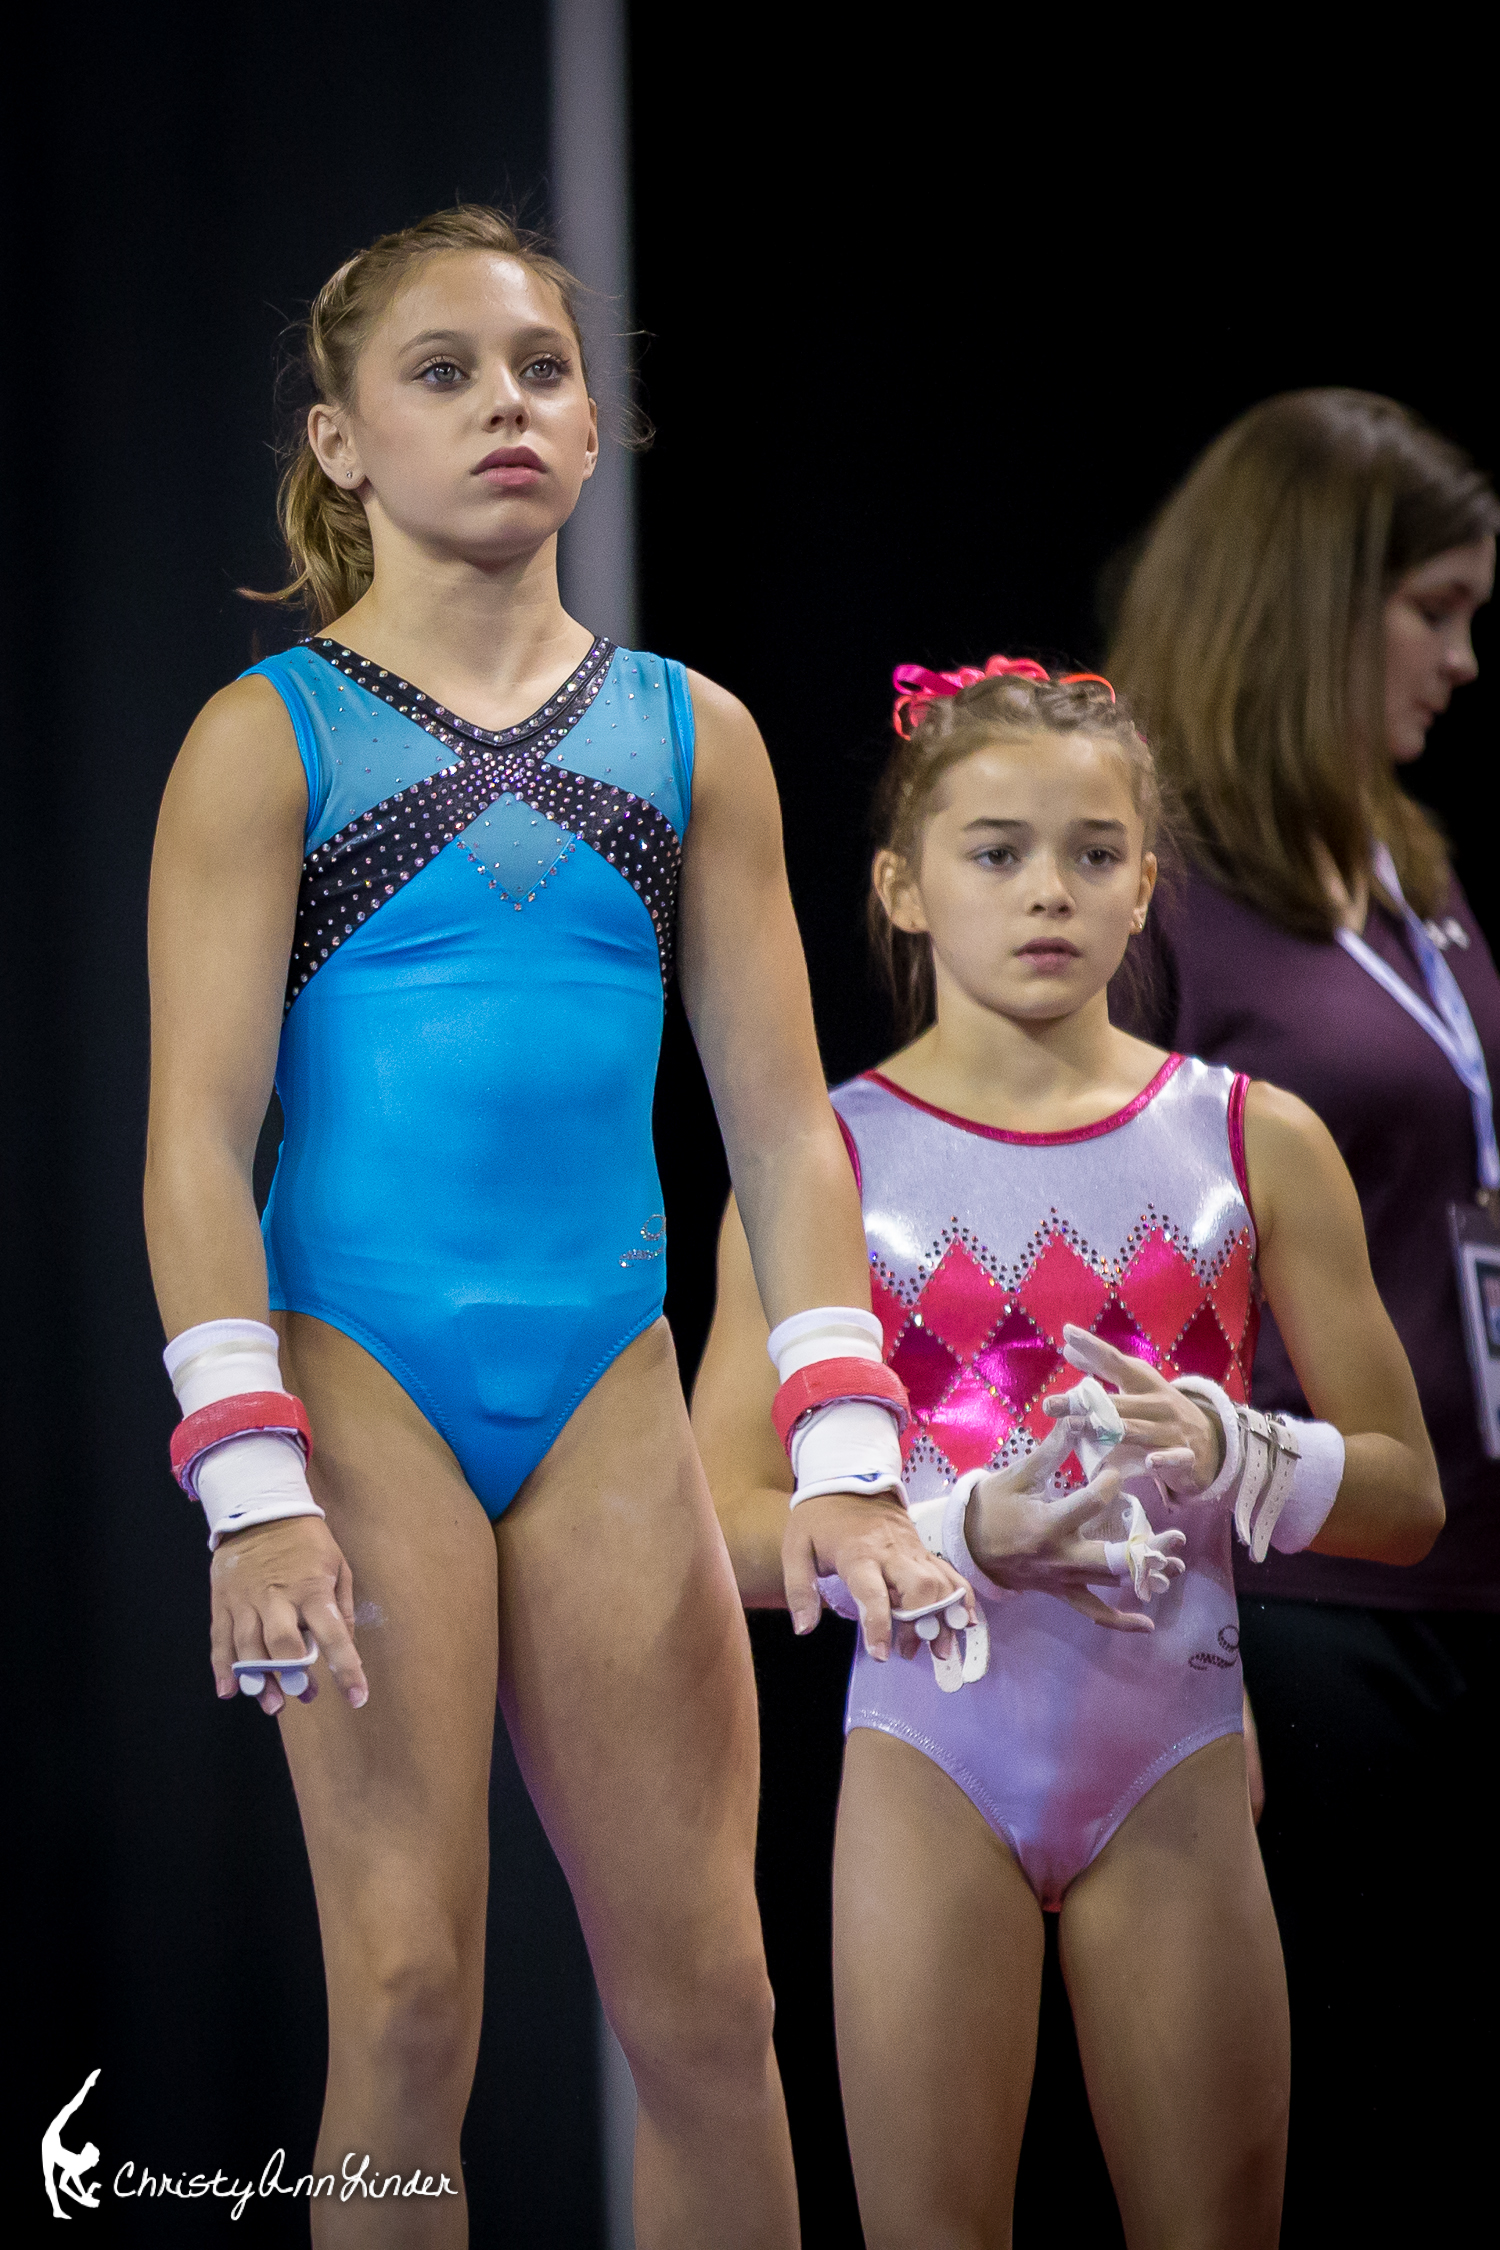 podium-training-secret-classic-23jpg